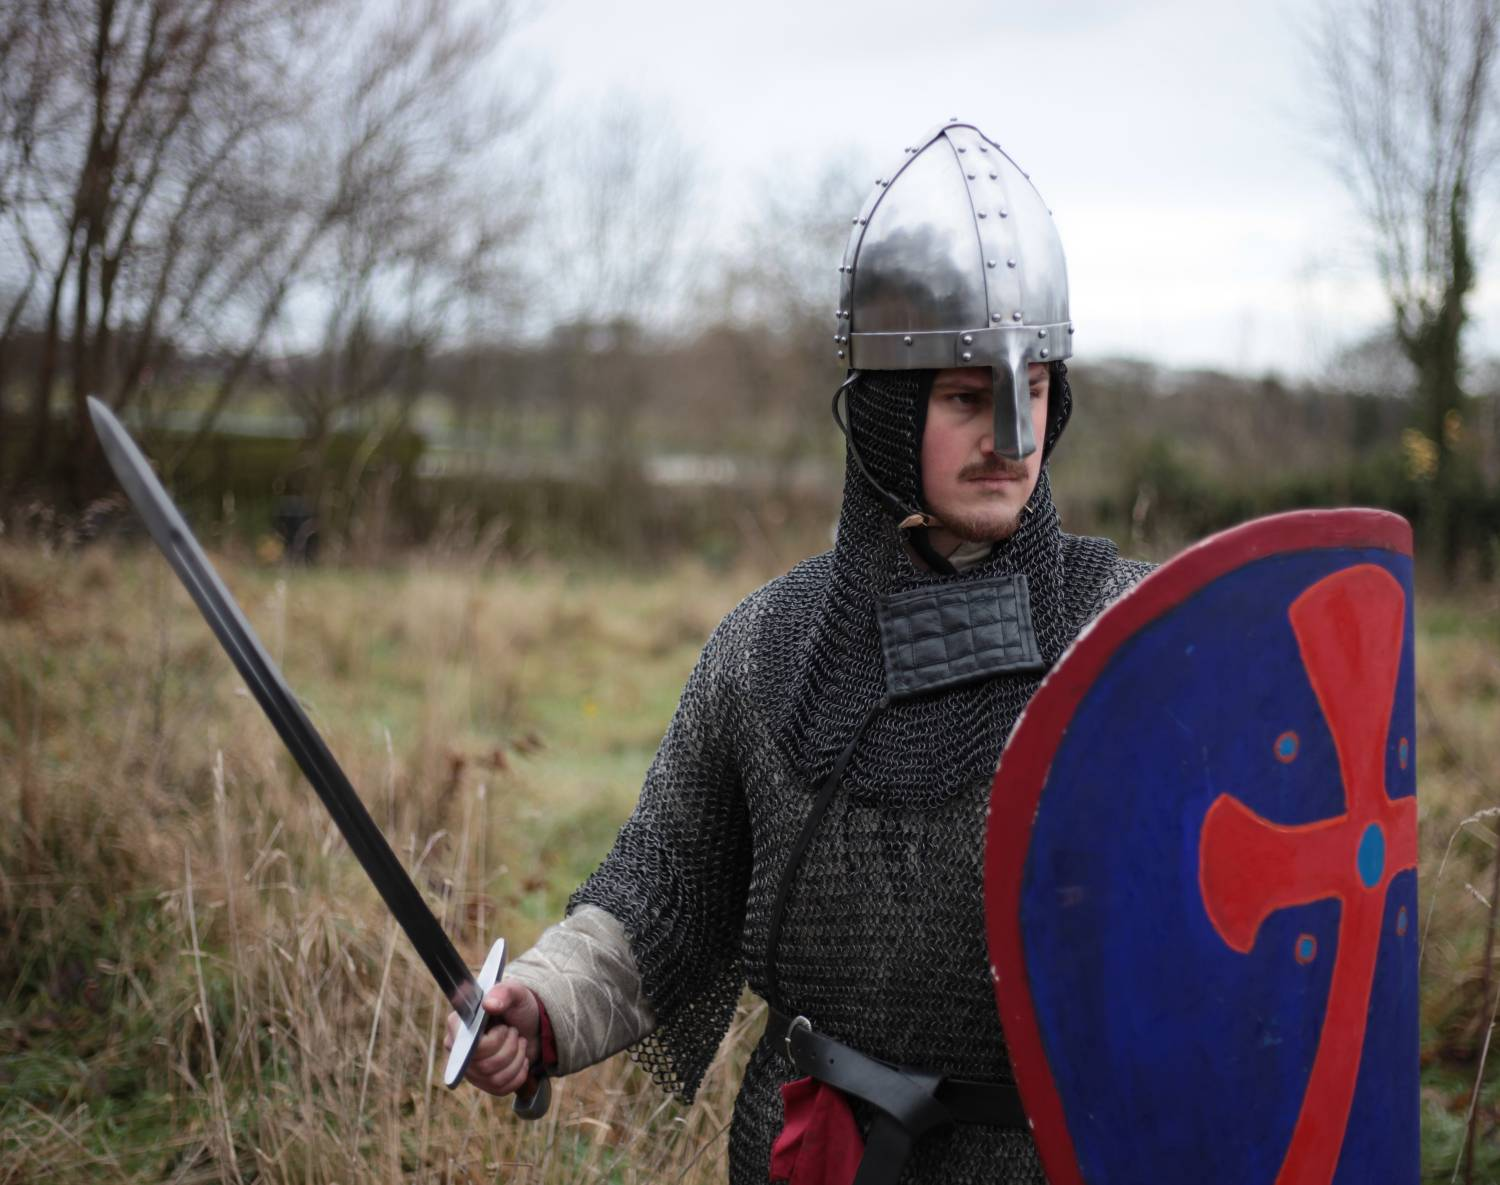 A Norman Knight